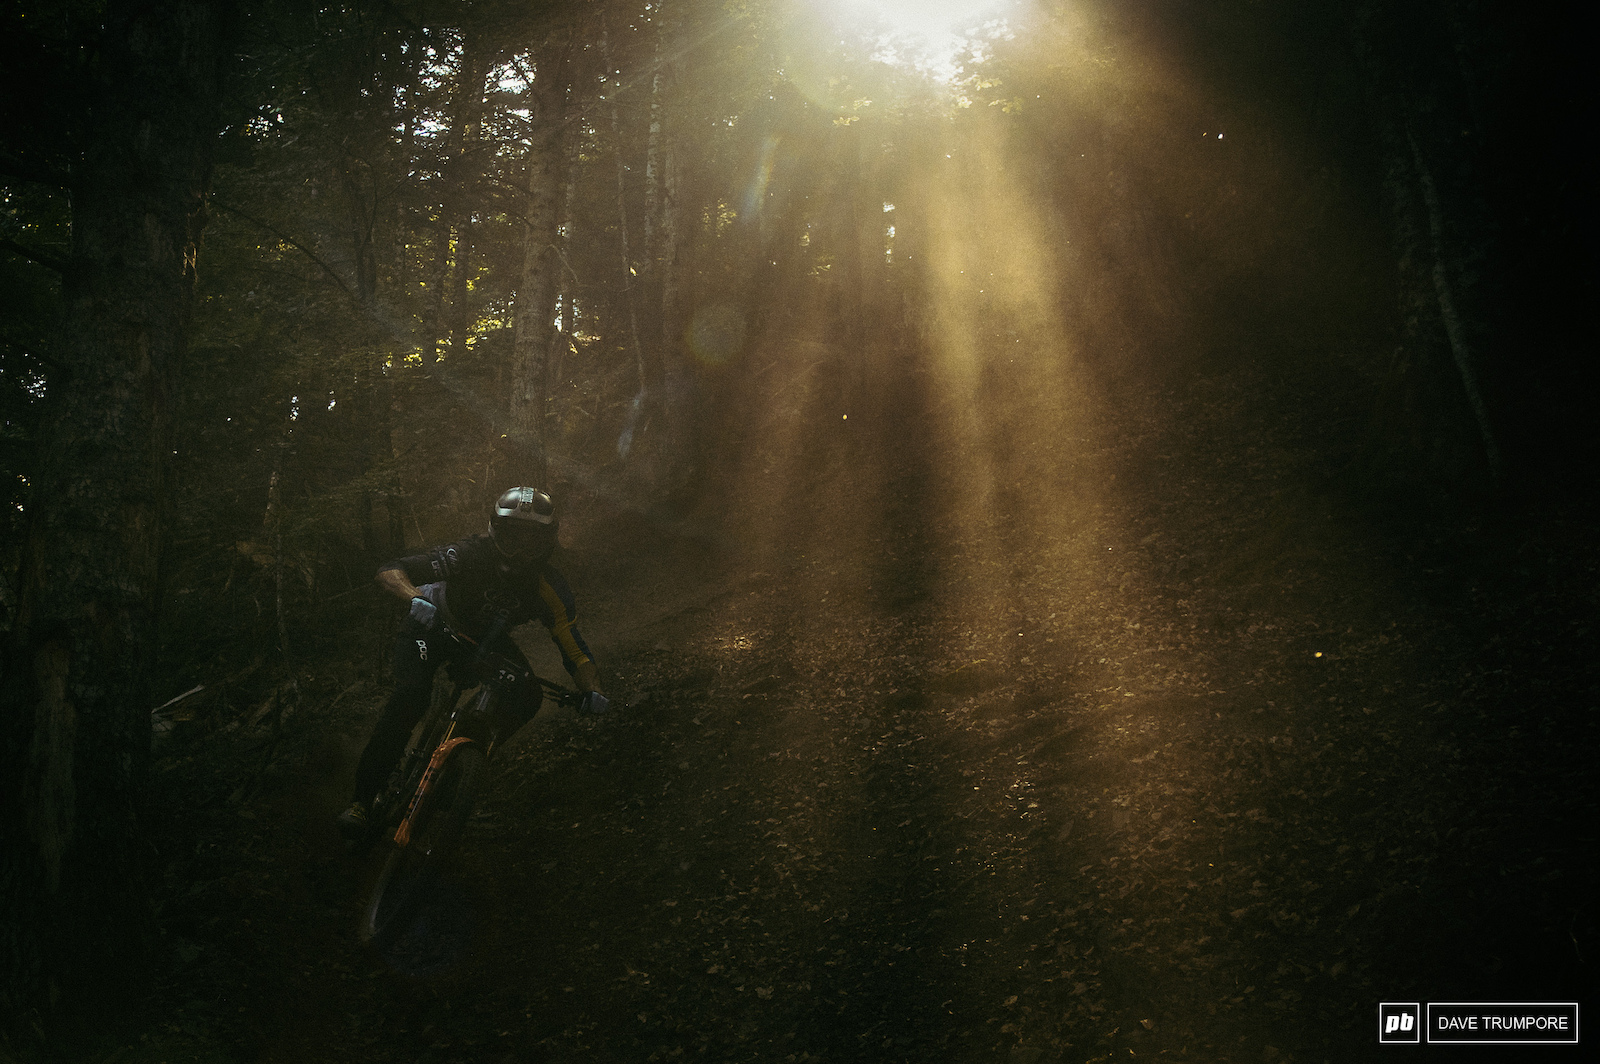 So much dust and light bro in the woods when things were dry